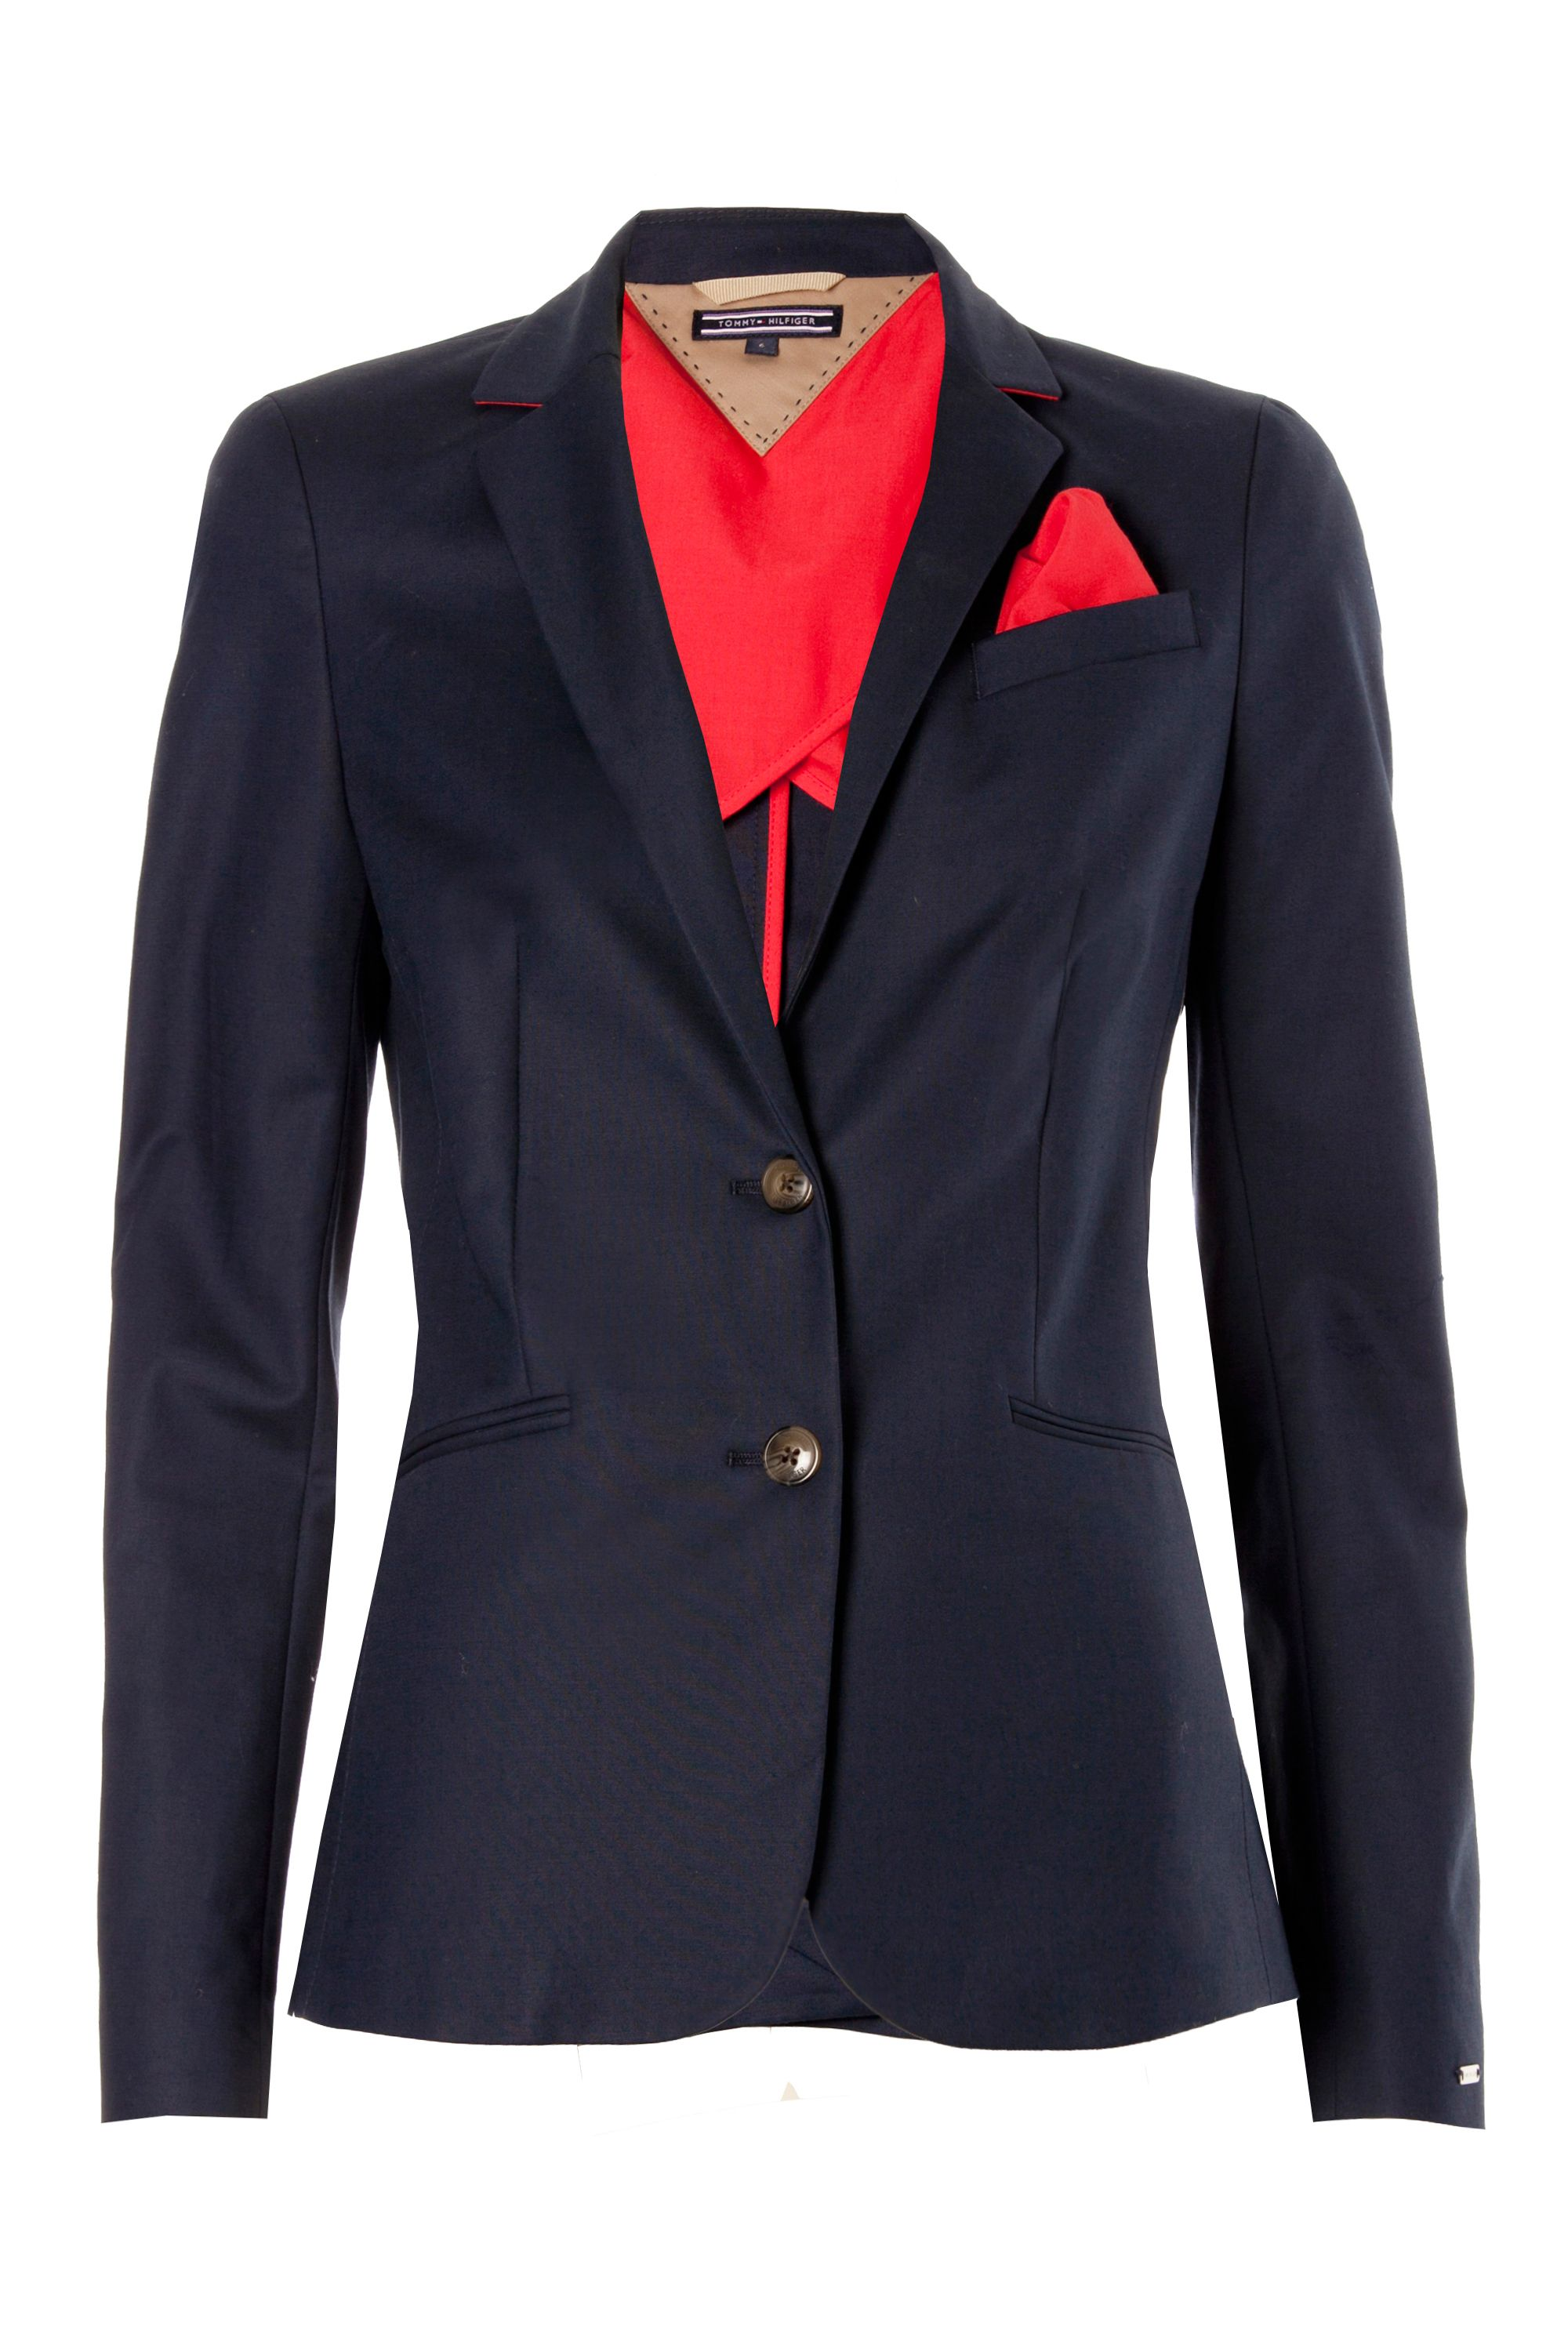 Usha New York Blazer